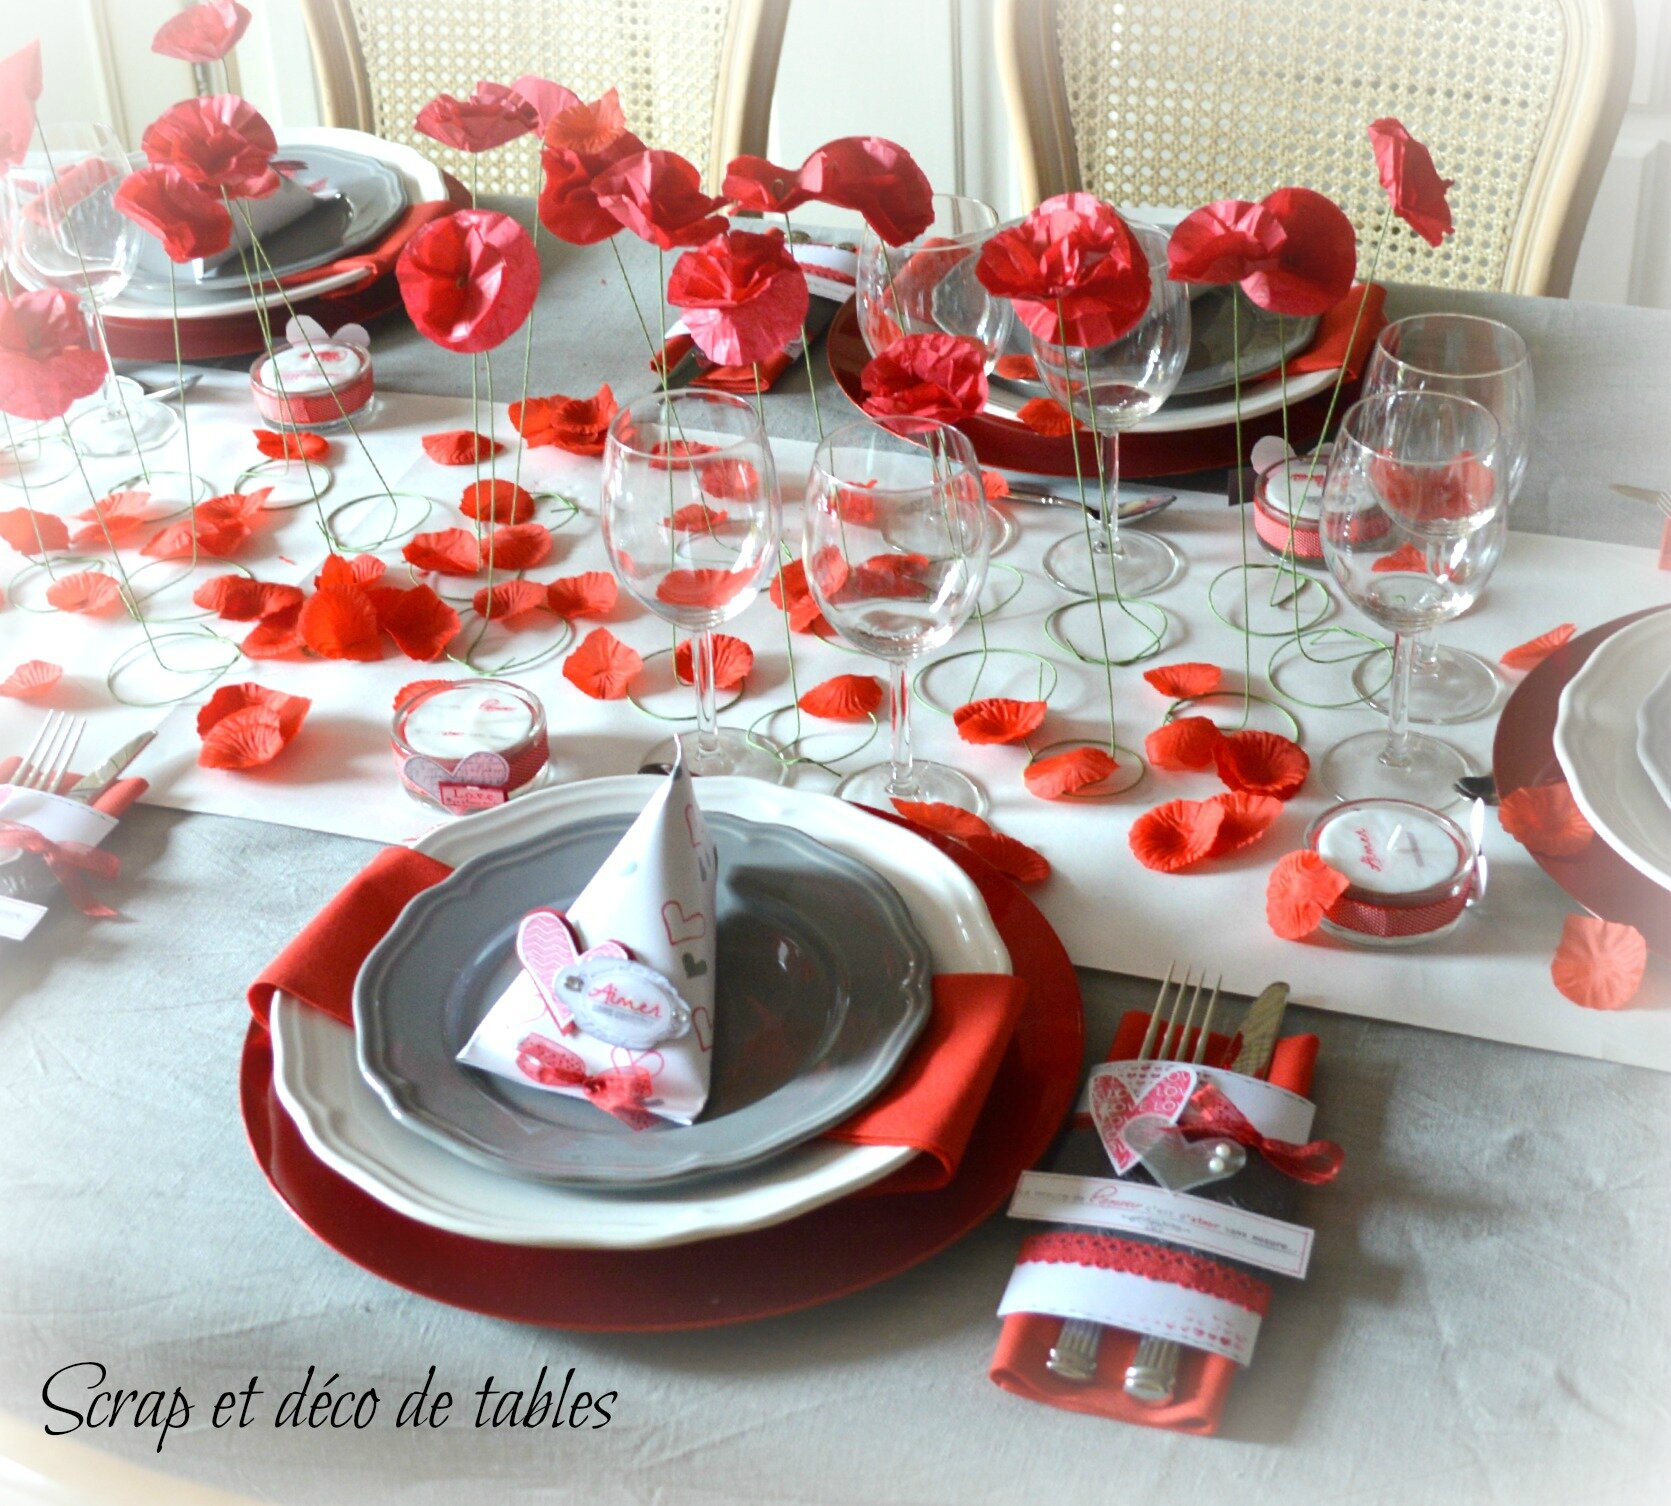 Table Saint Valentin avec deco de table saint-valentin 2015 - scrap et déco de tables